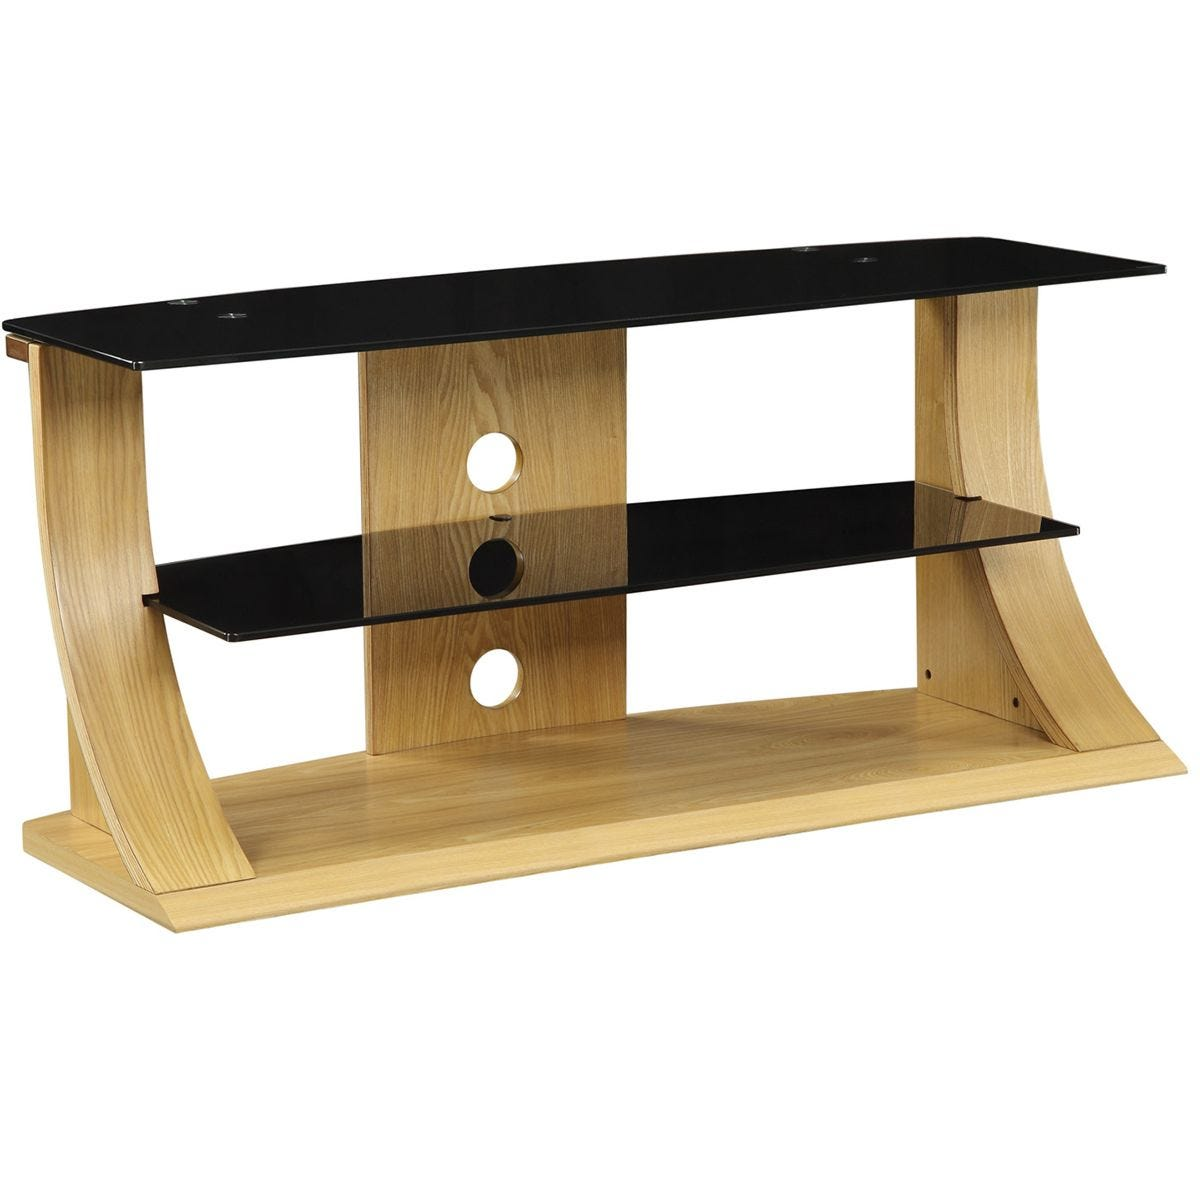 Jual Florence Curve Oak TV Stand 1100